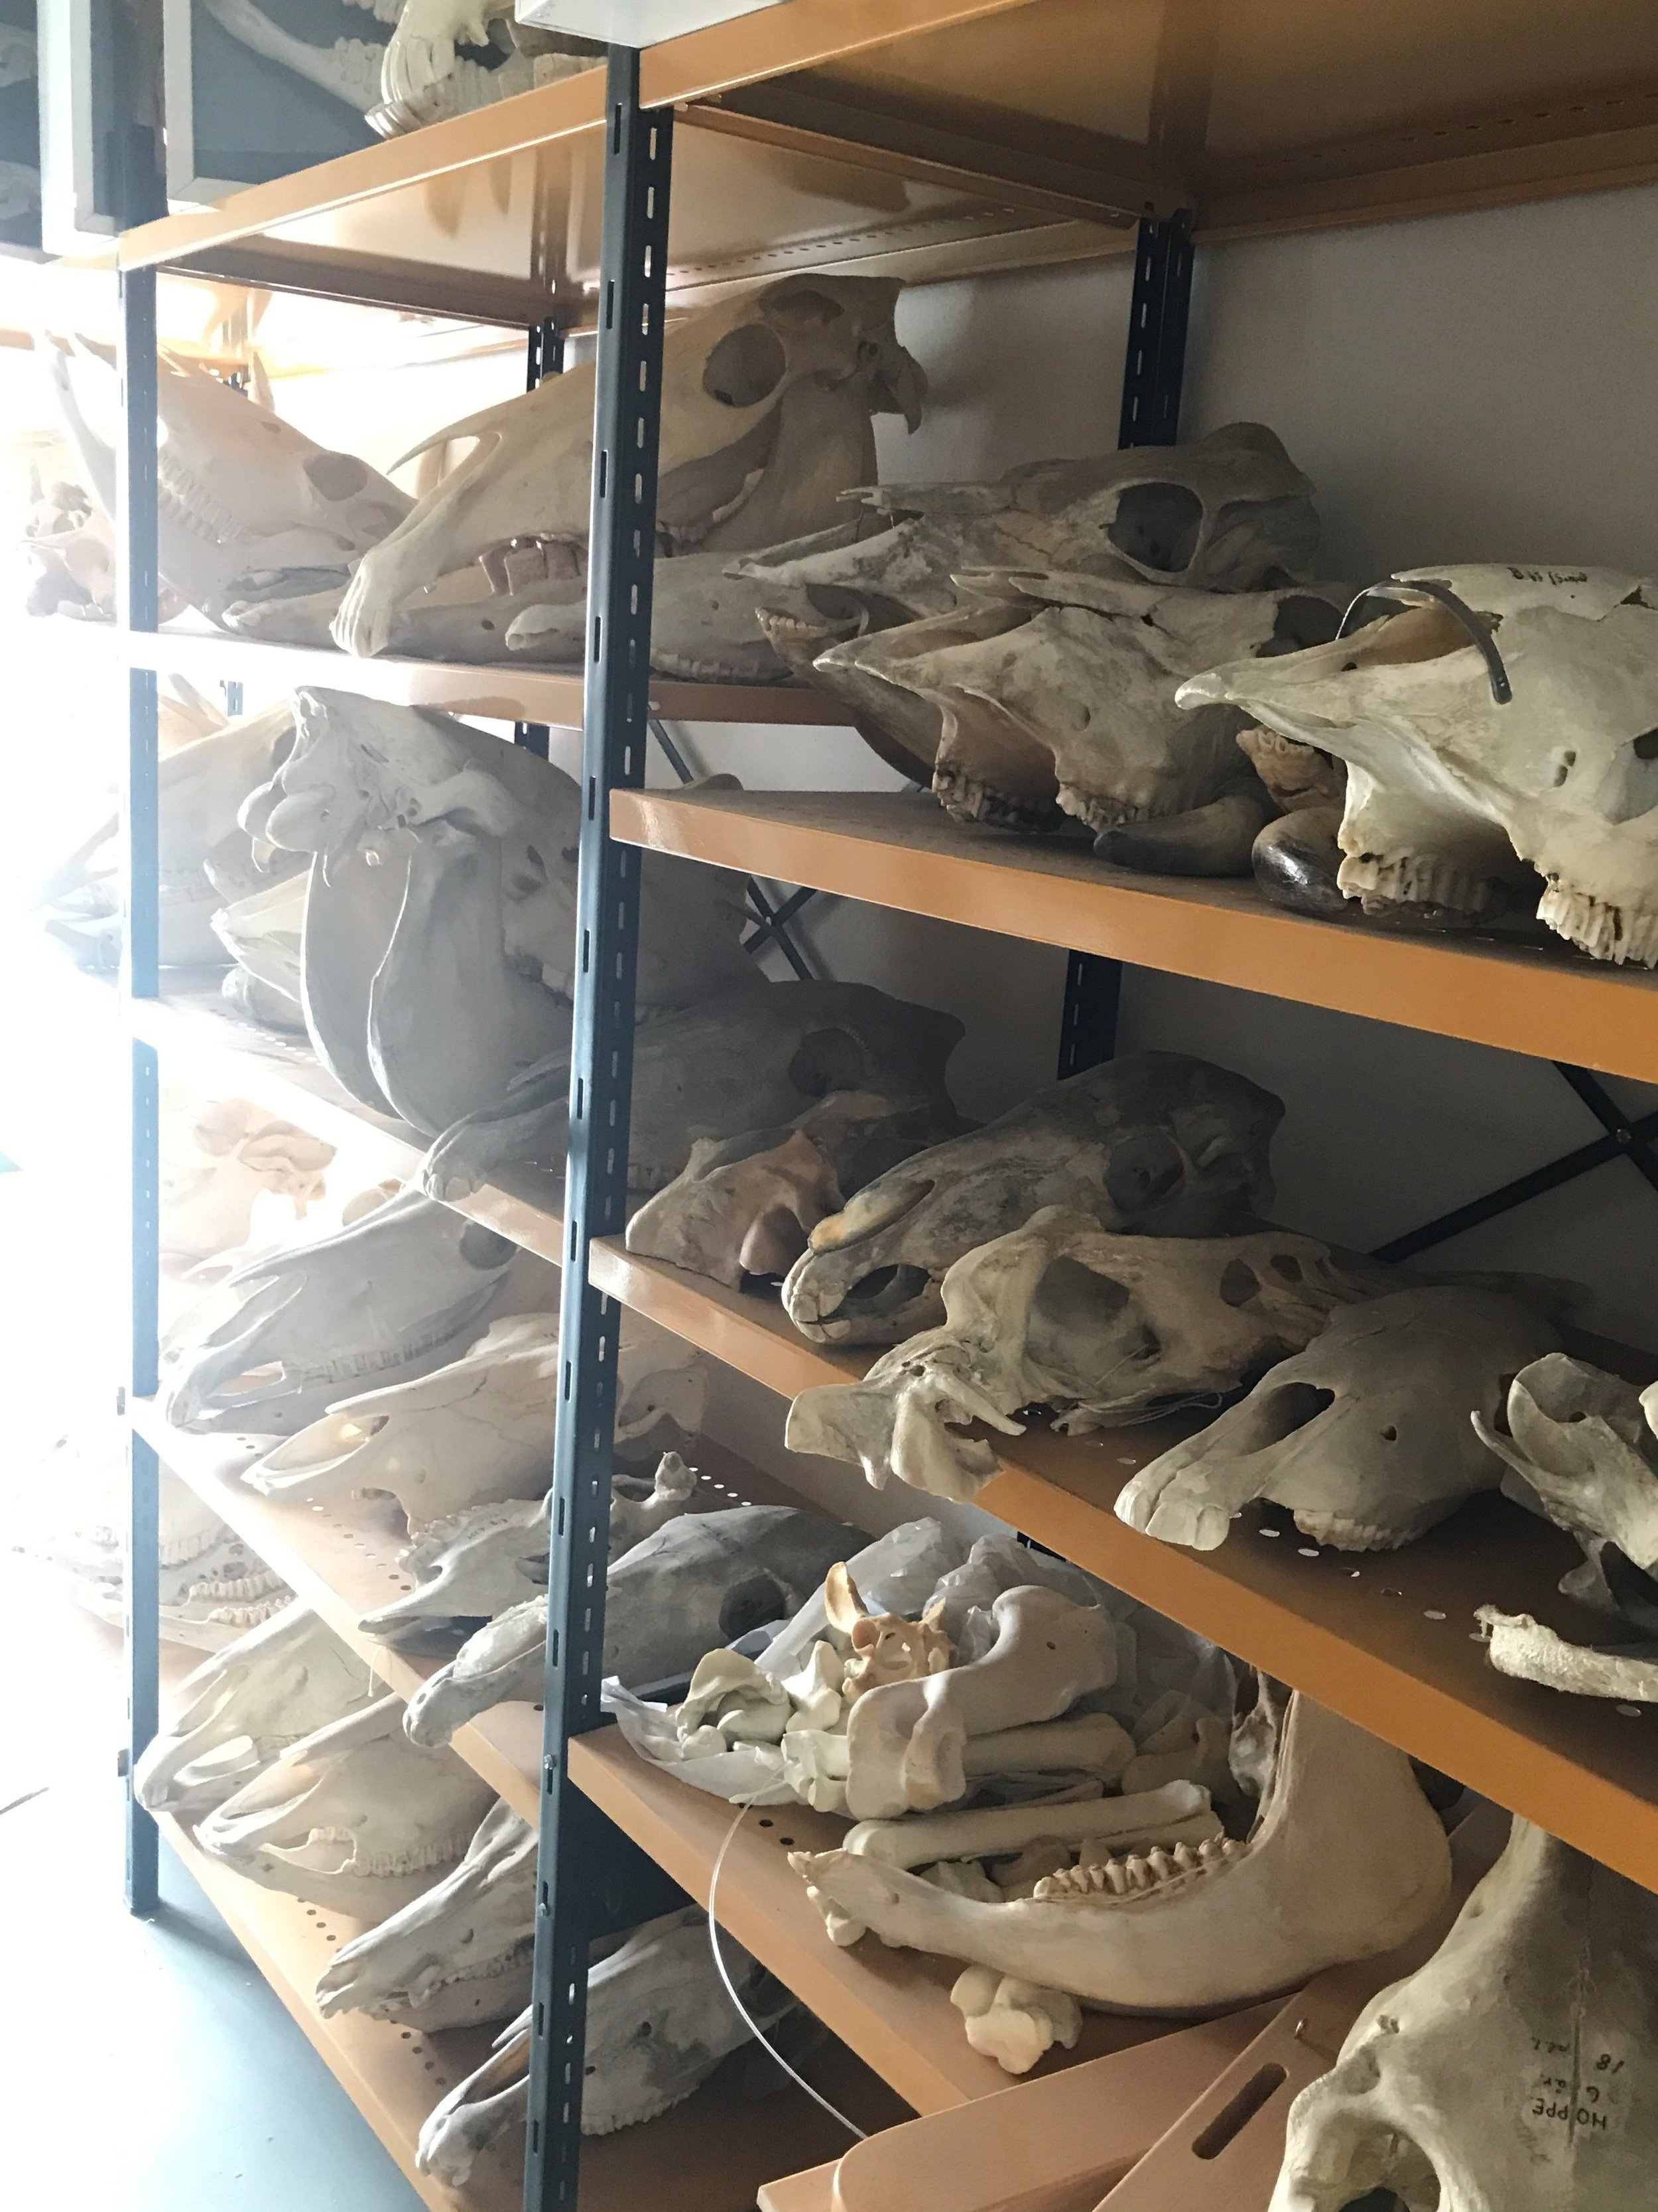 I thought I'd include a sneaky image I took in the storage area above the dissection room. We're currently working on the digestive system, and today's demonstration revolved around teeth.